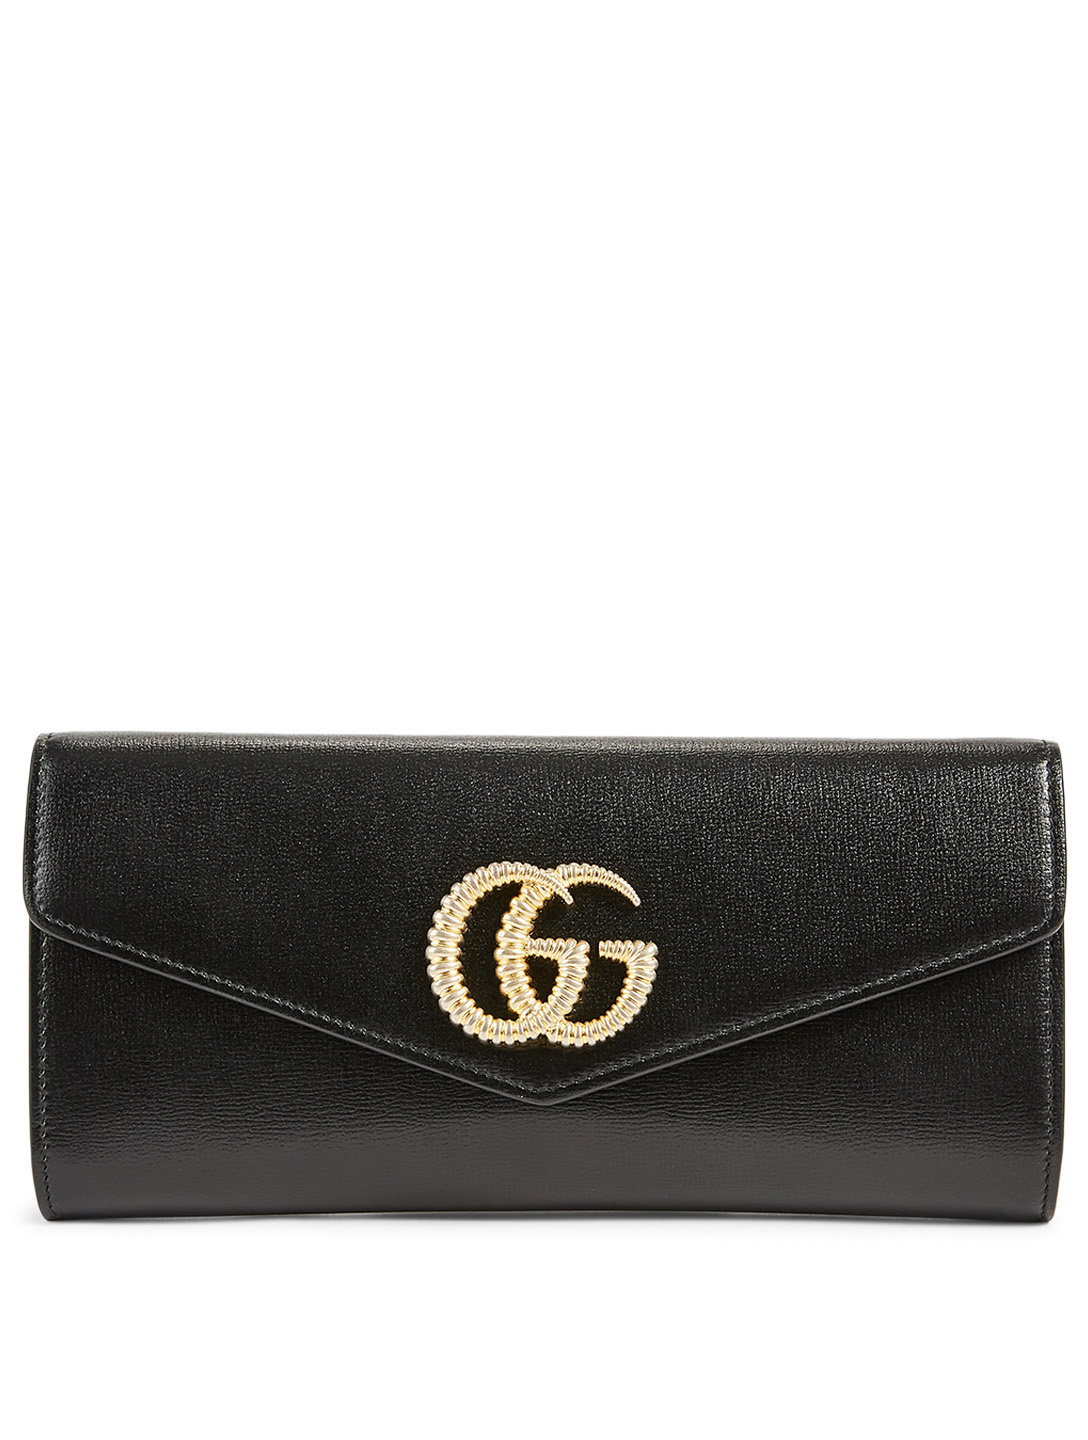 GUCCI Broadway Leather Clutch Bag With Double G Women's Black